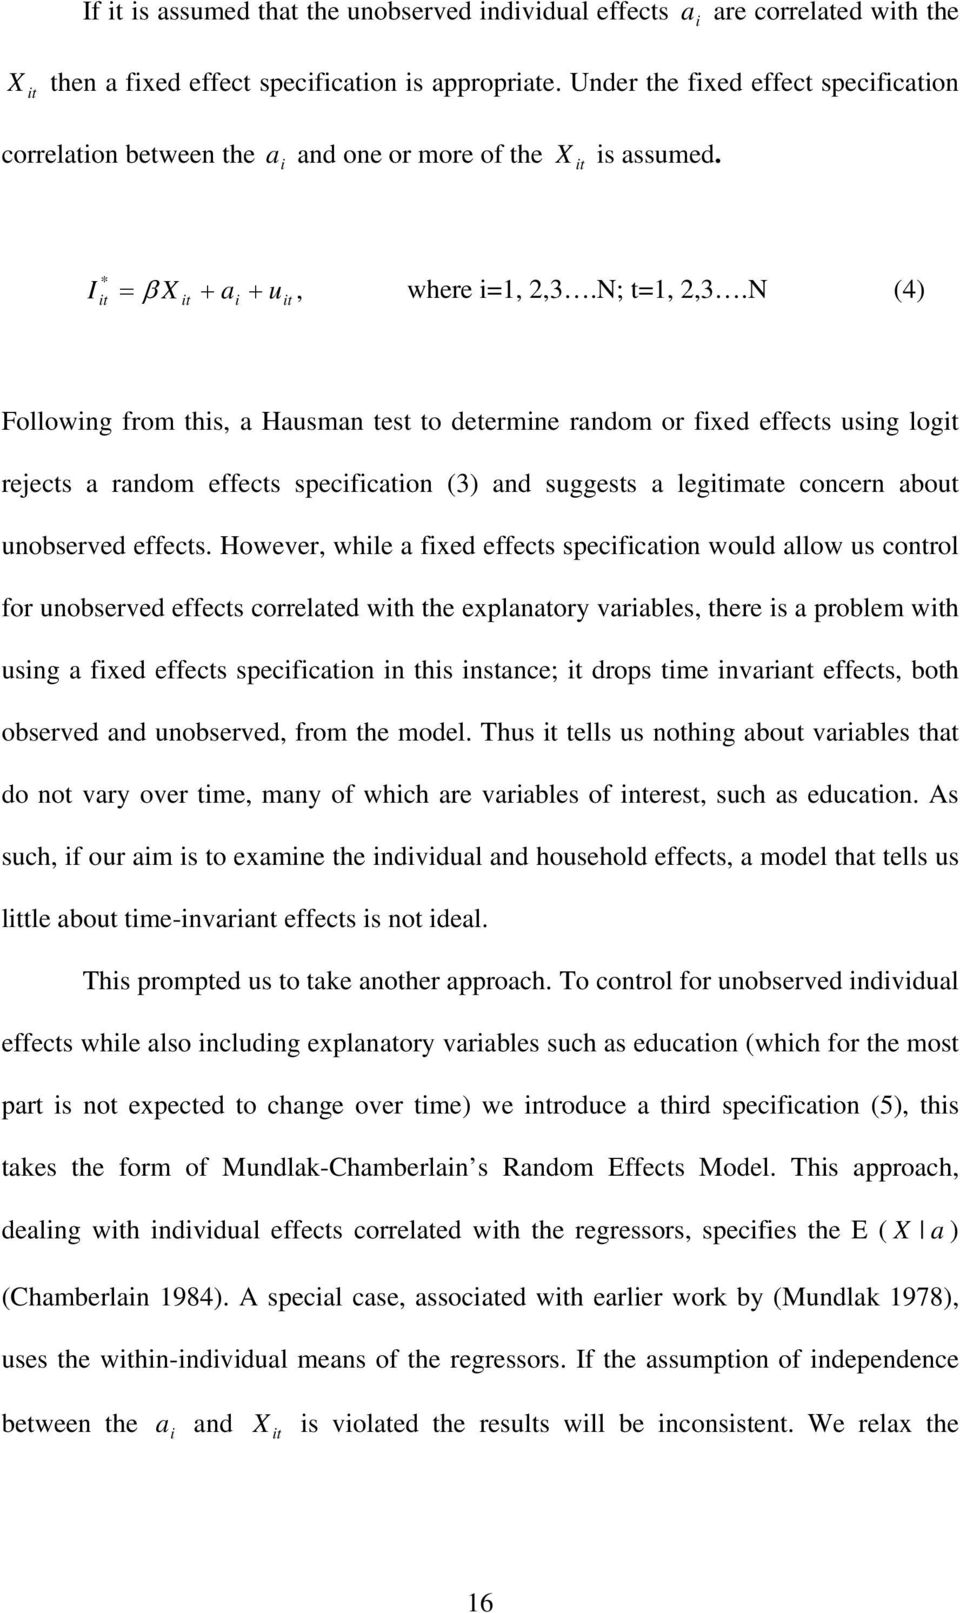 N (4) Followng from ths, a Hausman test to determne random or fxed effects usng log rejects a random effects specfcaton (3) and suggests a legmate concern about unobserved effects.